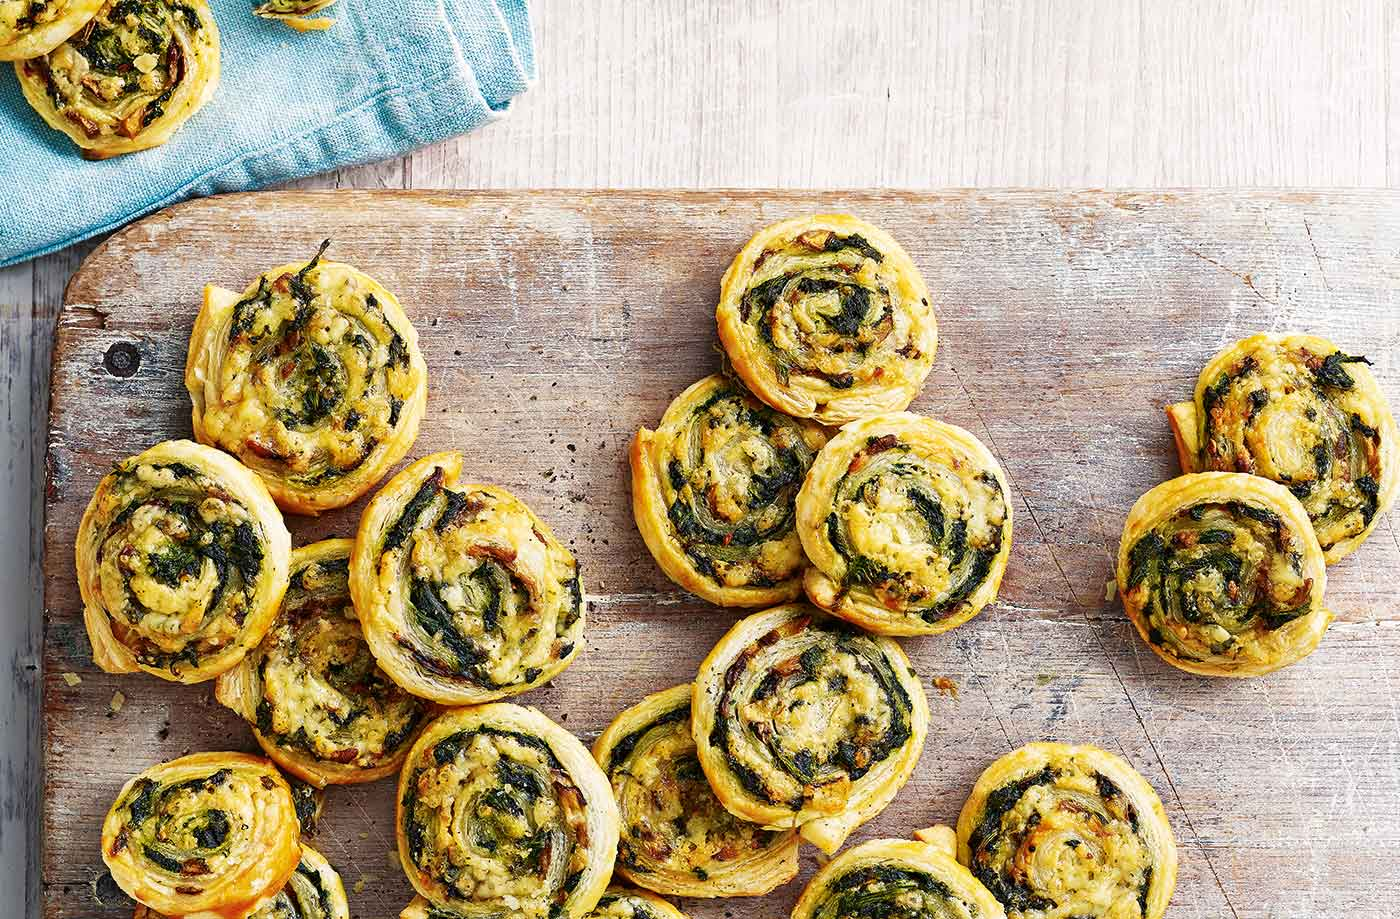 Cheesy mushroom and spinach pinwheels recipe